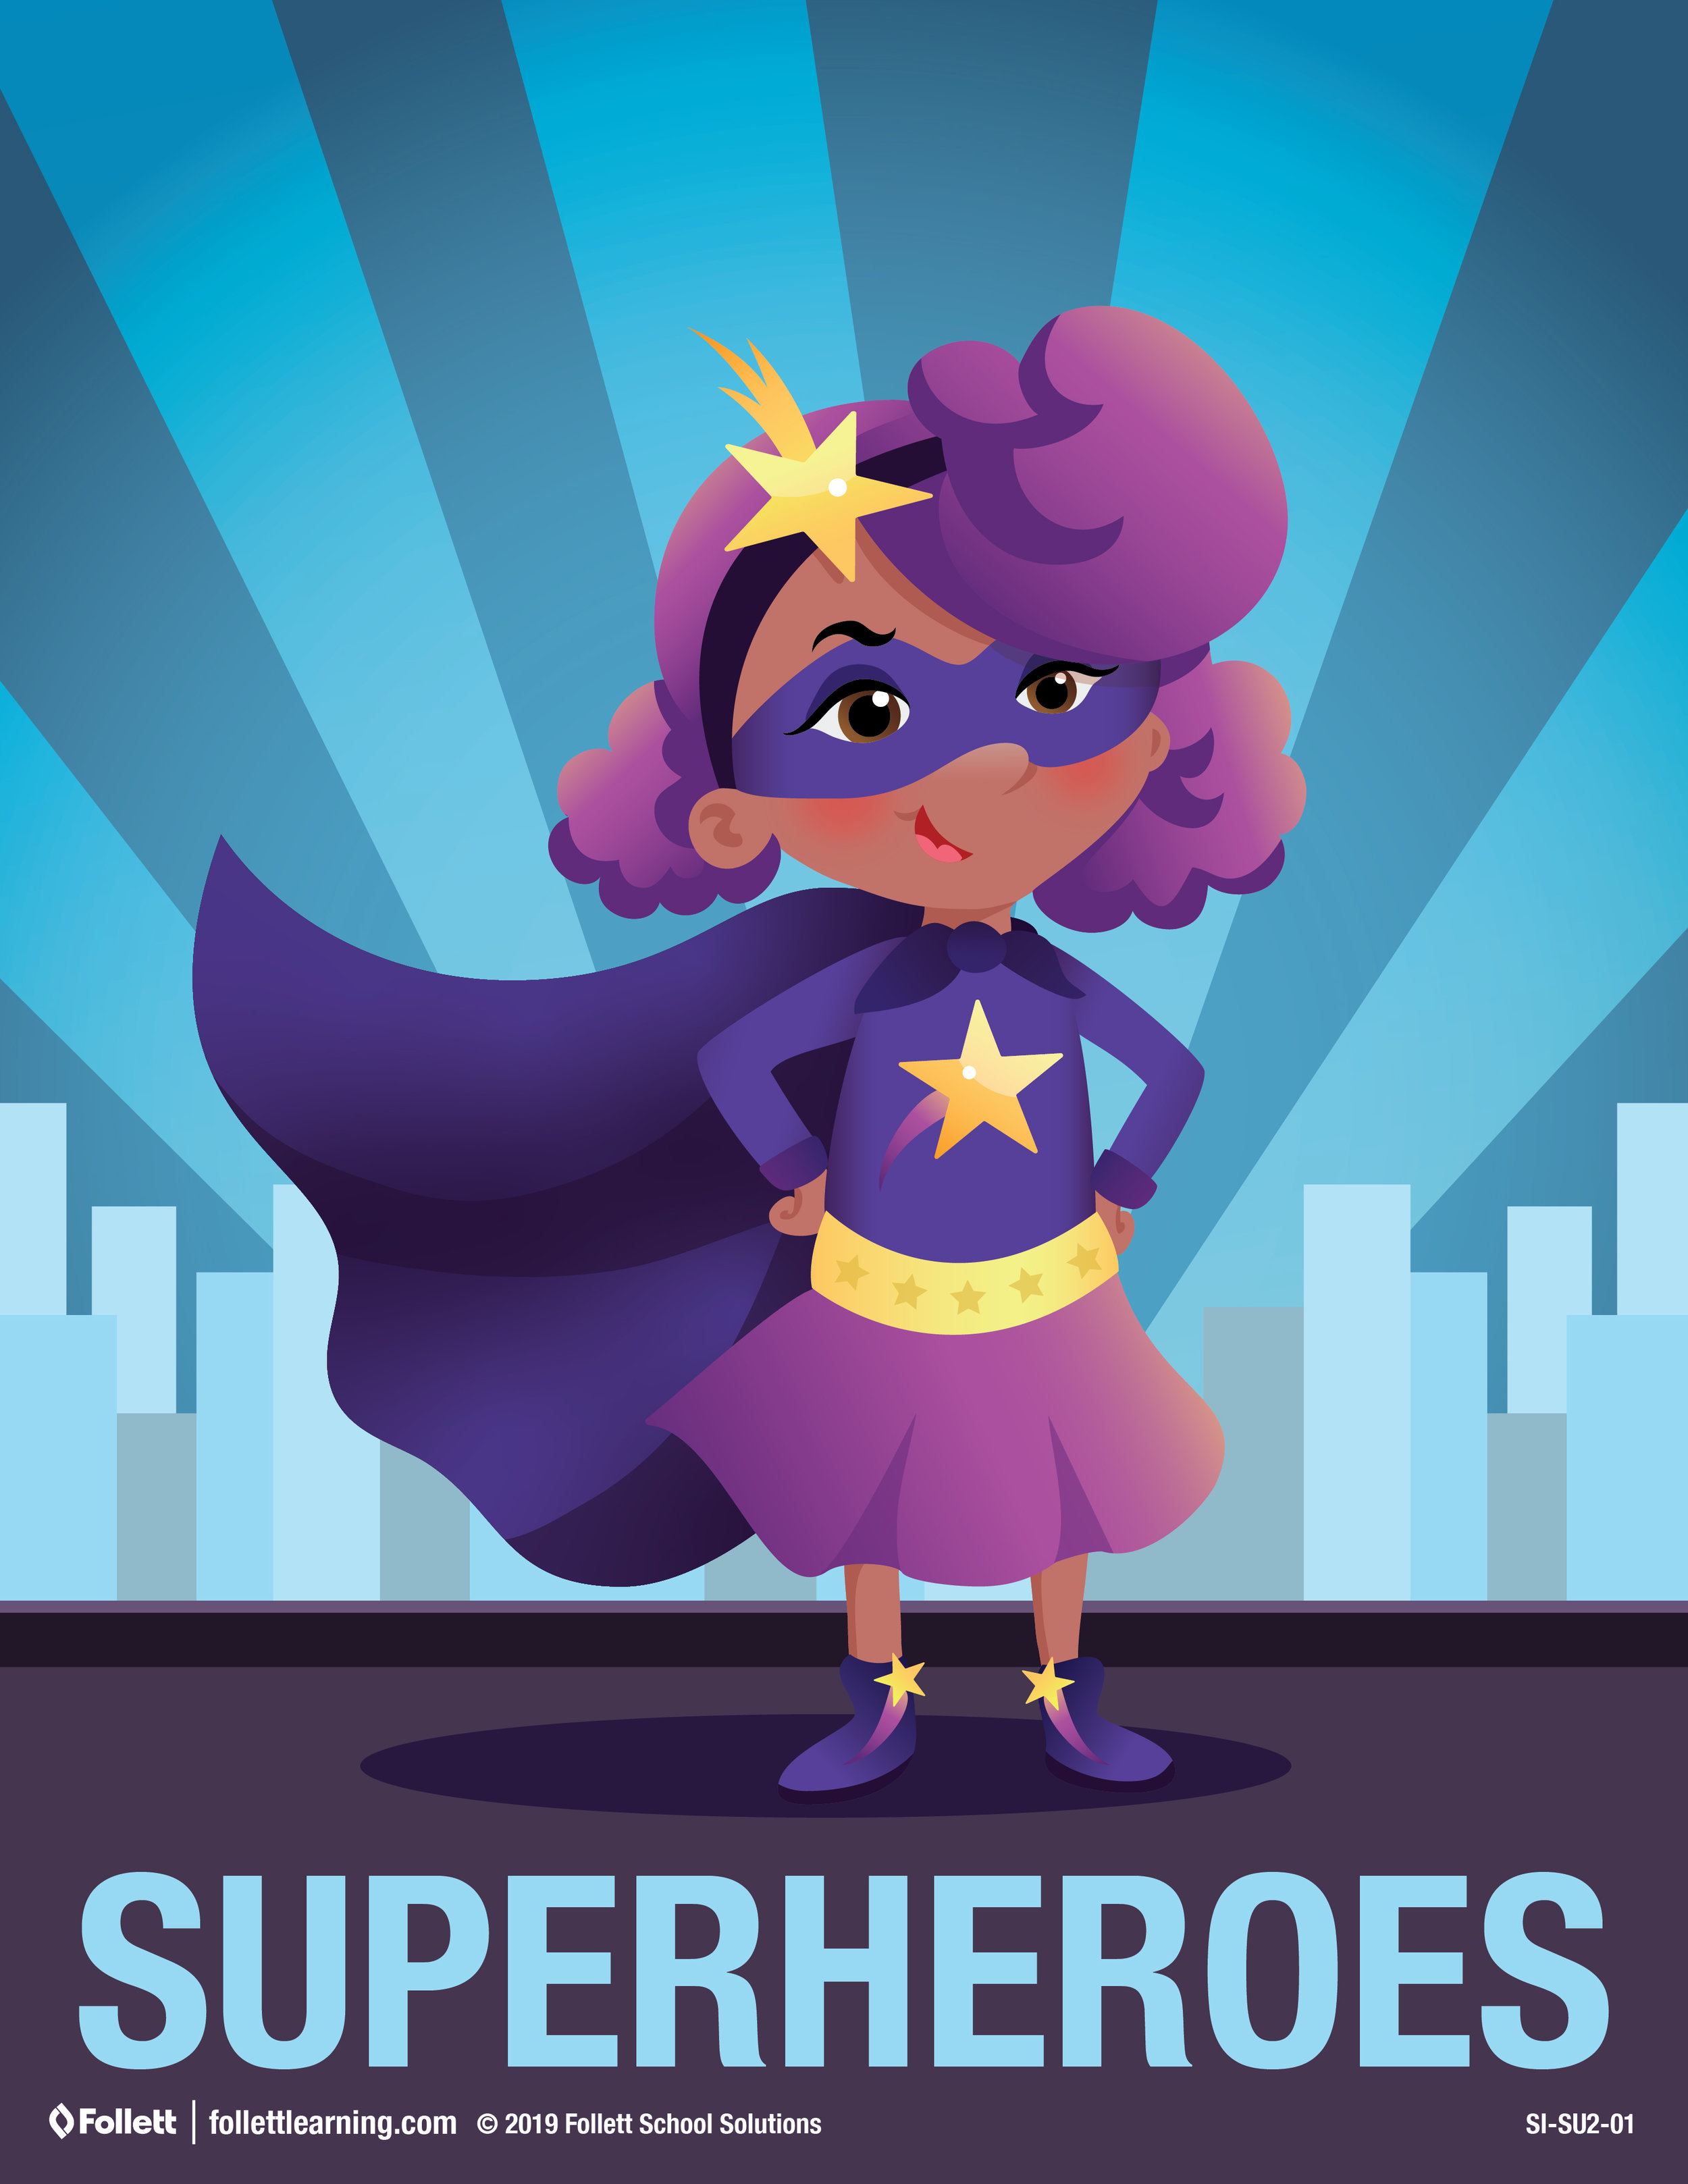 292724 Superheroes PreK-2 (Super Star) Sign SI-SU2-01_Artboard 3.jpg